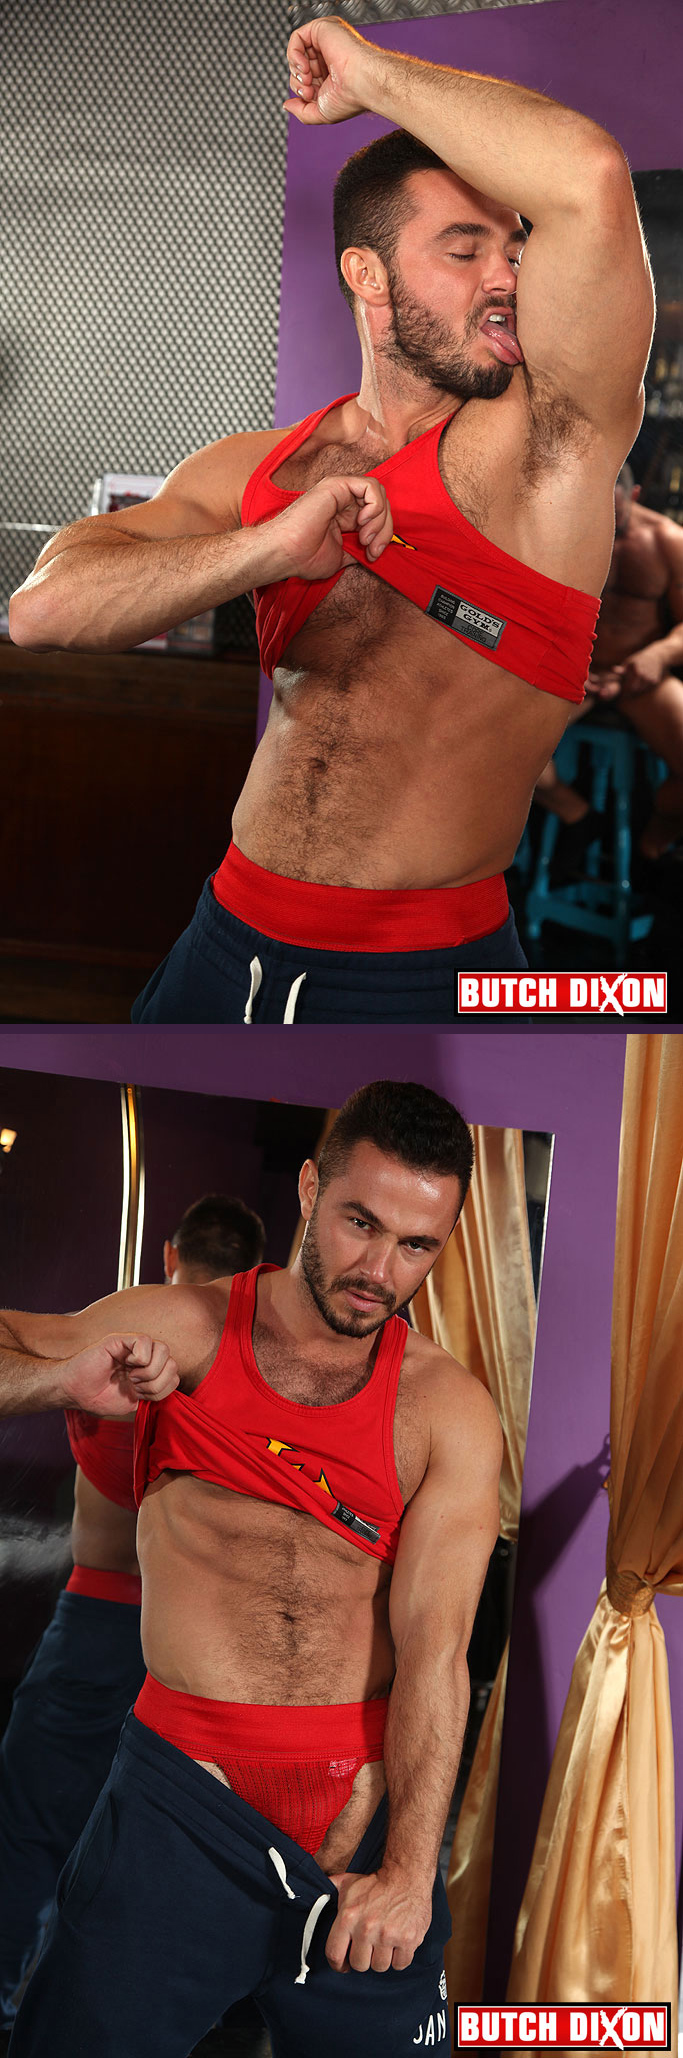 Jessy Ares in an Activeman 3 Inch Jockstrap